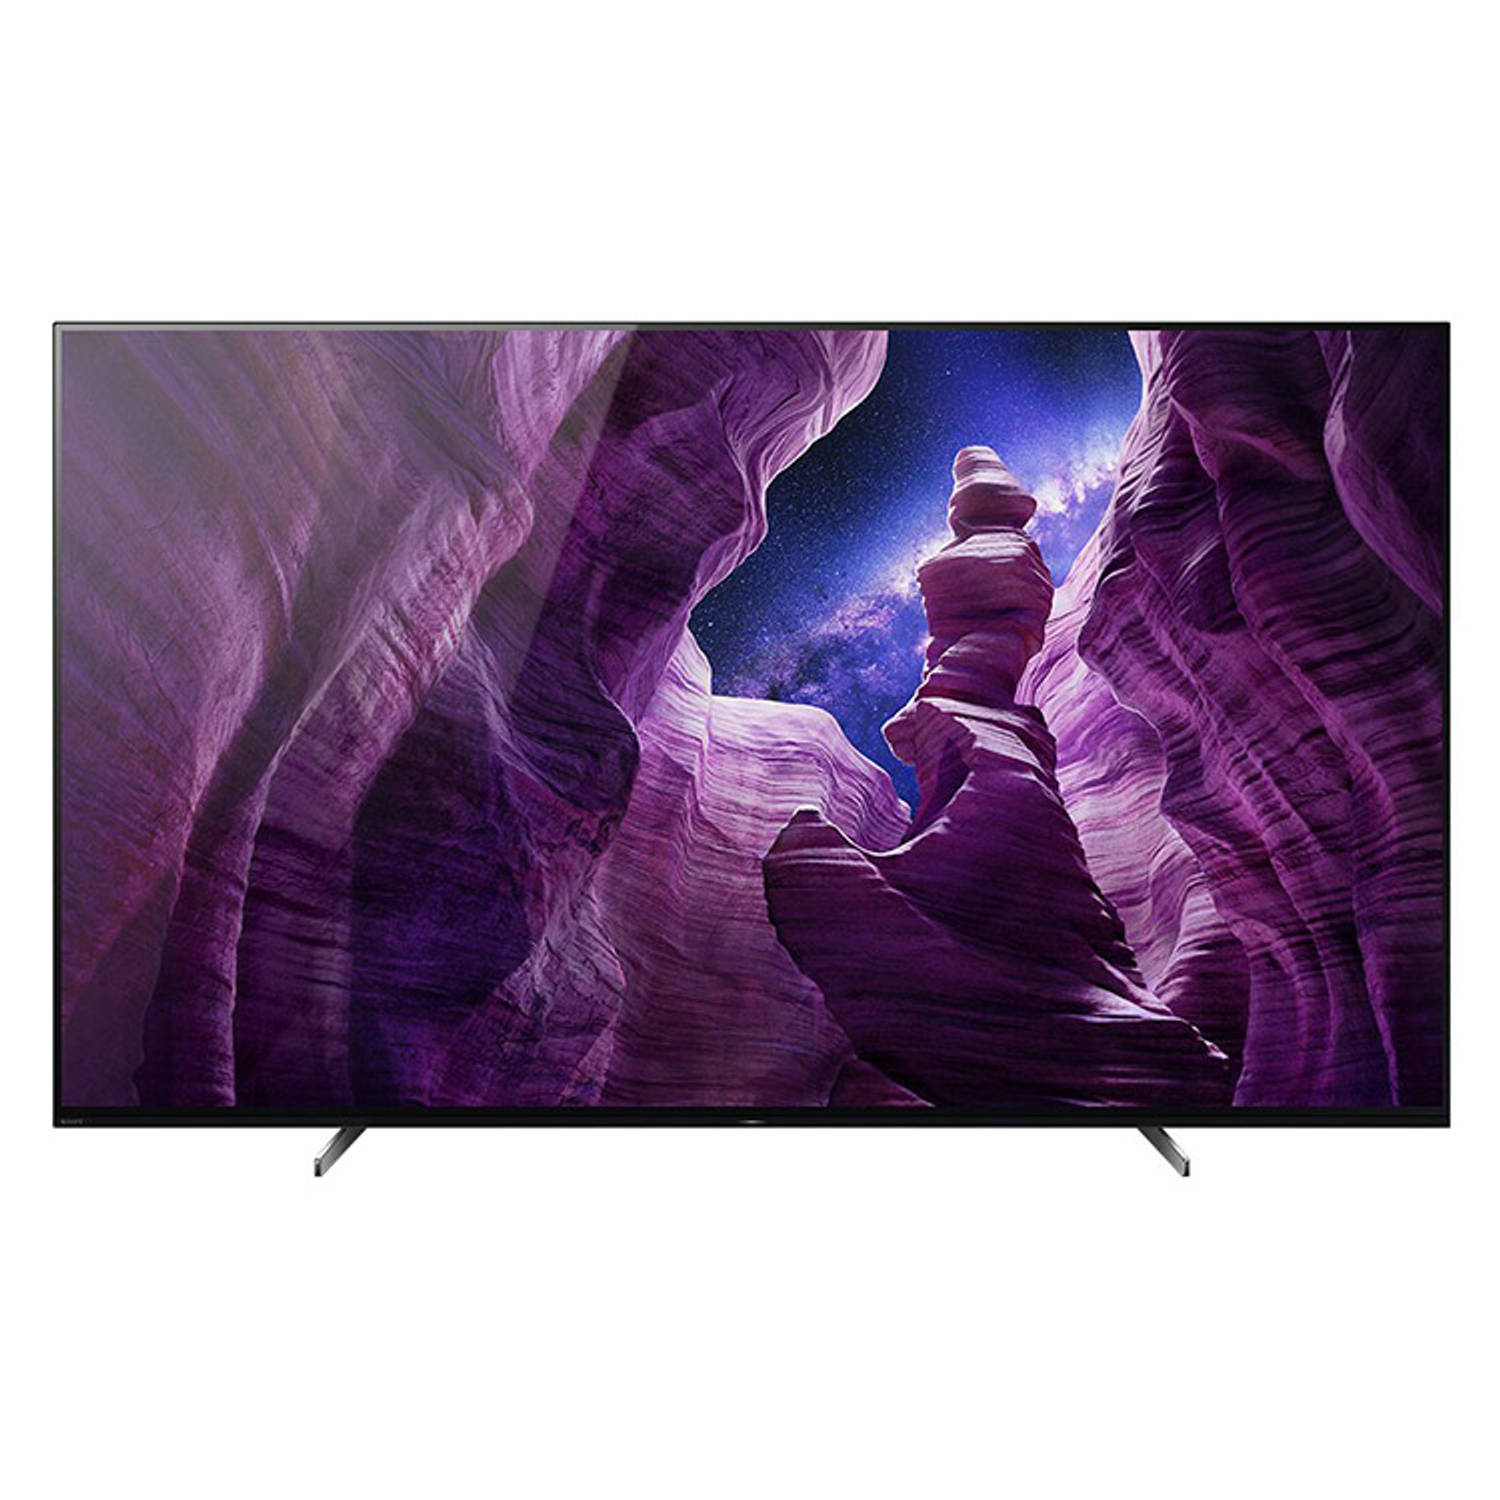 Sony Kd-55a89 – 4k Hdr Oled Android Tv (55 Inch)